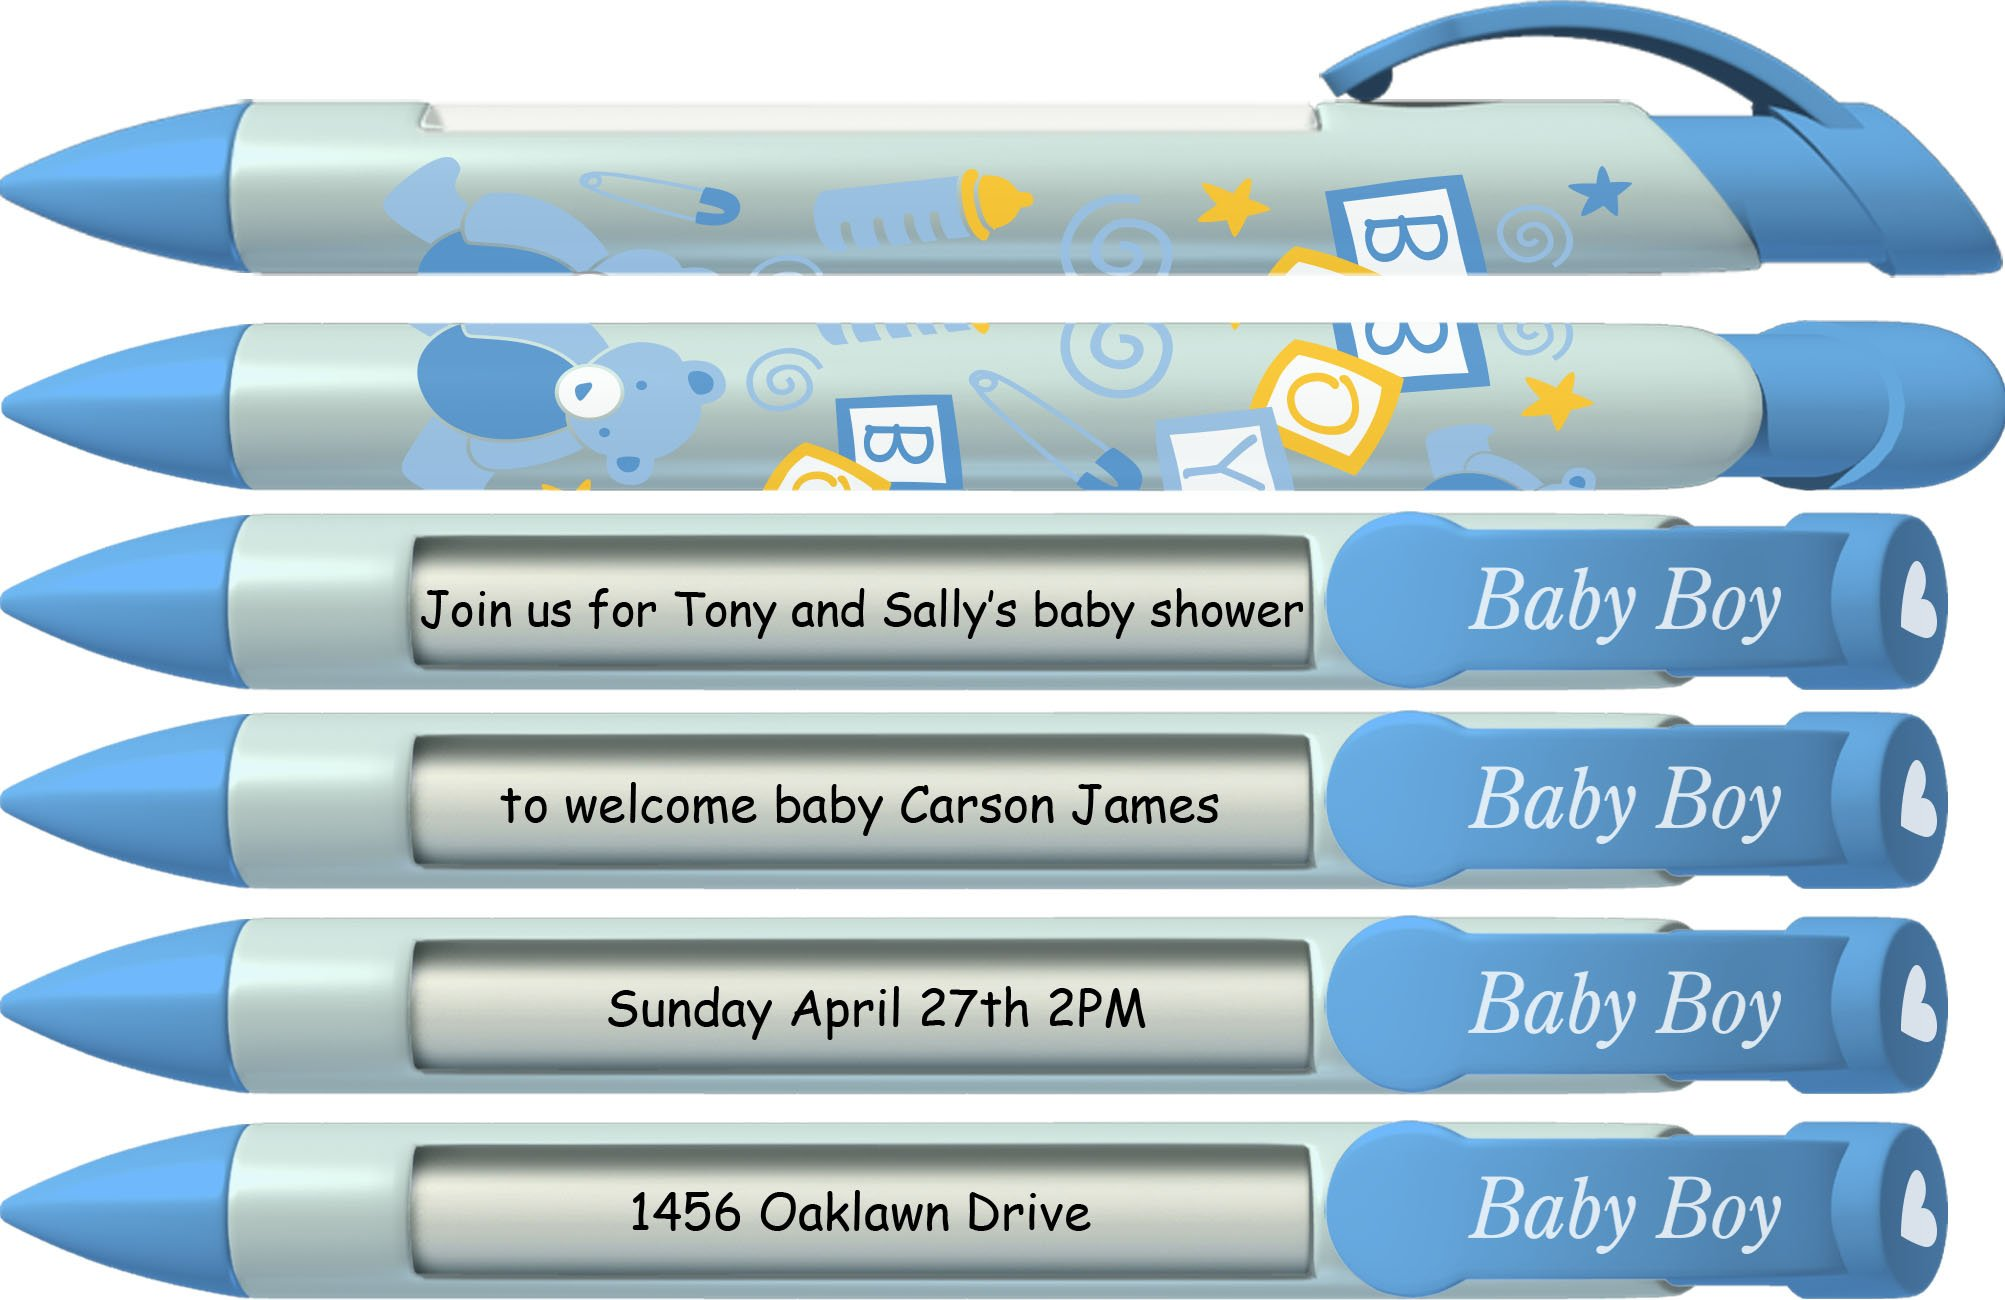 Baby Pen by Greeting Pen- Personalized Baby Shower Favor / Invitation and Birth Annoucement Pens - Baby Boy Blocks Rotating Message Pen 50 pack (P-BP-21-50) by Greeting Pen (Image #3)